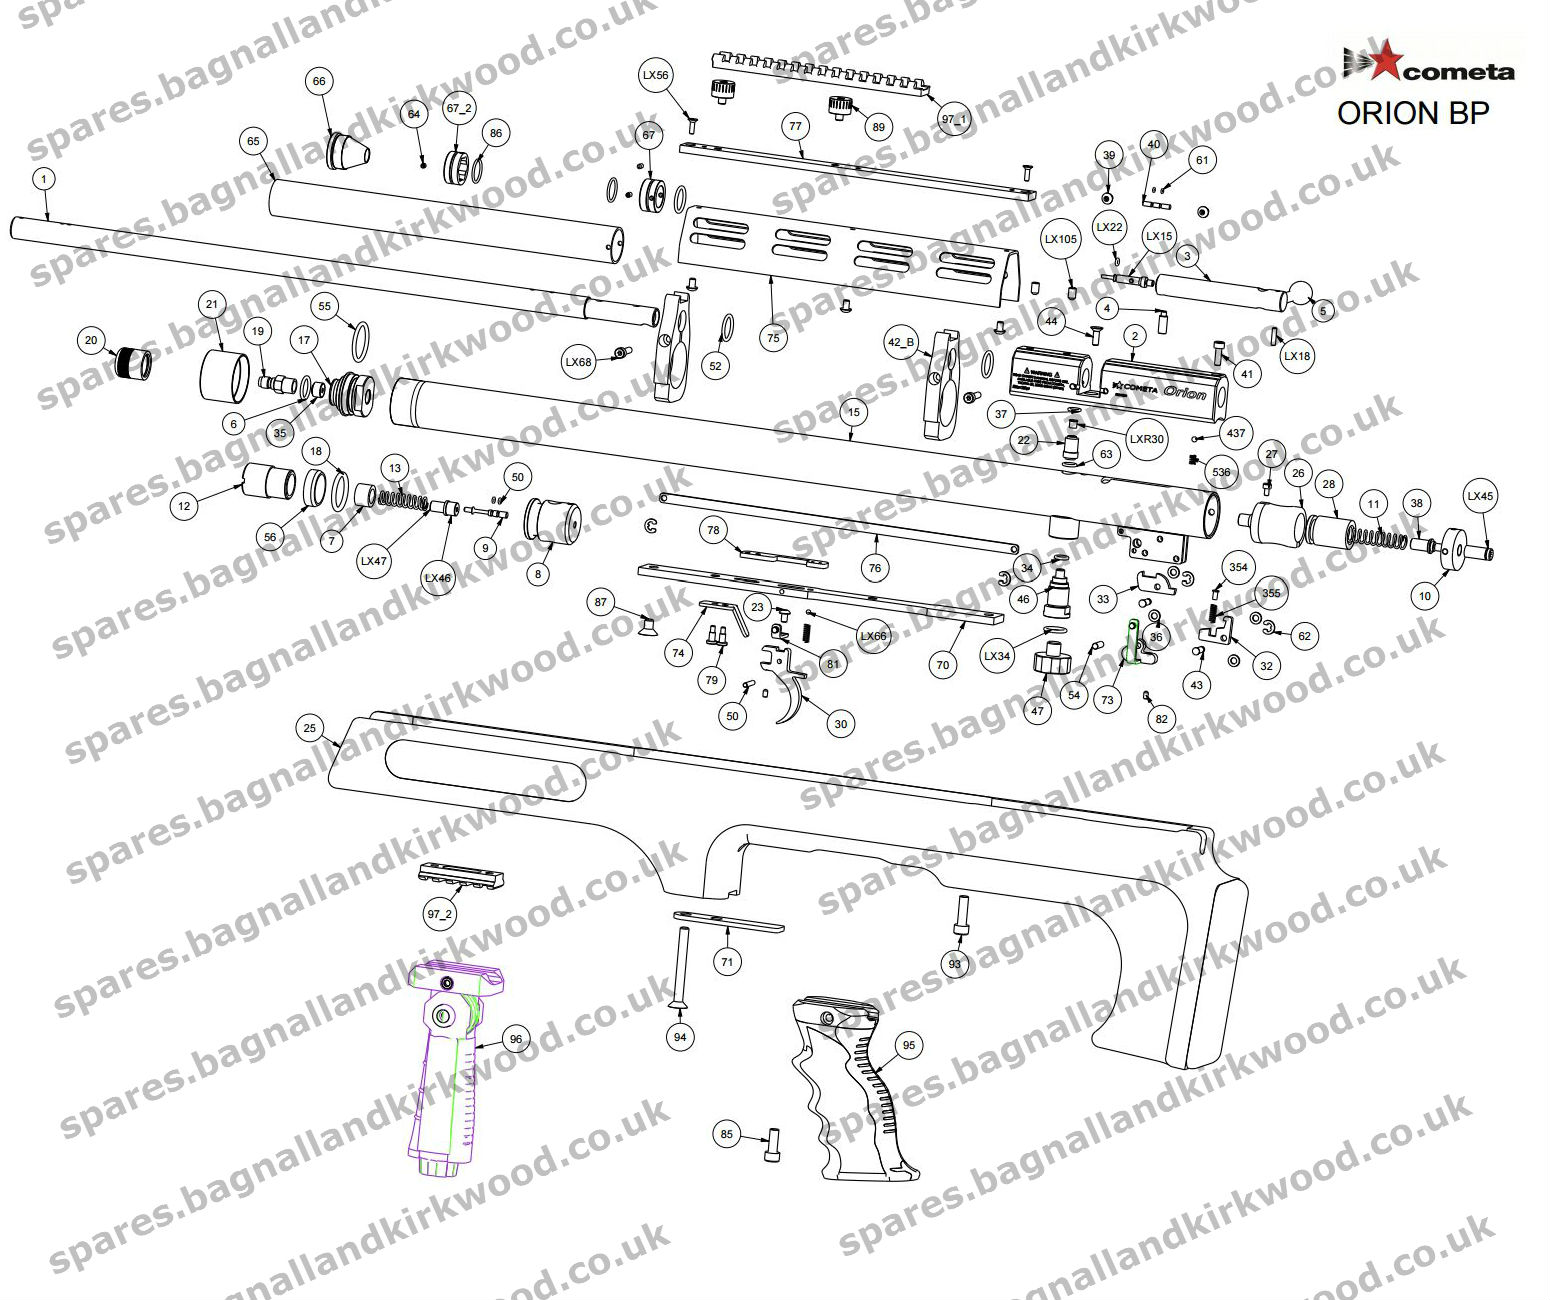 Parts Of A Sheet Diagram Guide And Troubleshooting Wiring Likewise Stihl Chainsaw Moreover On Cometa Orion Bp Air Rifle Exploded Bagnall Rh Spares Bagnallandkirkwood Co Uk Briggs Stratton Buick